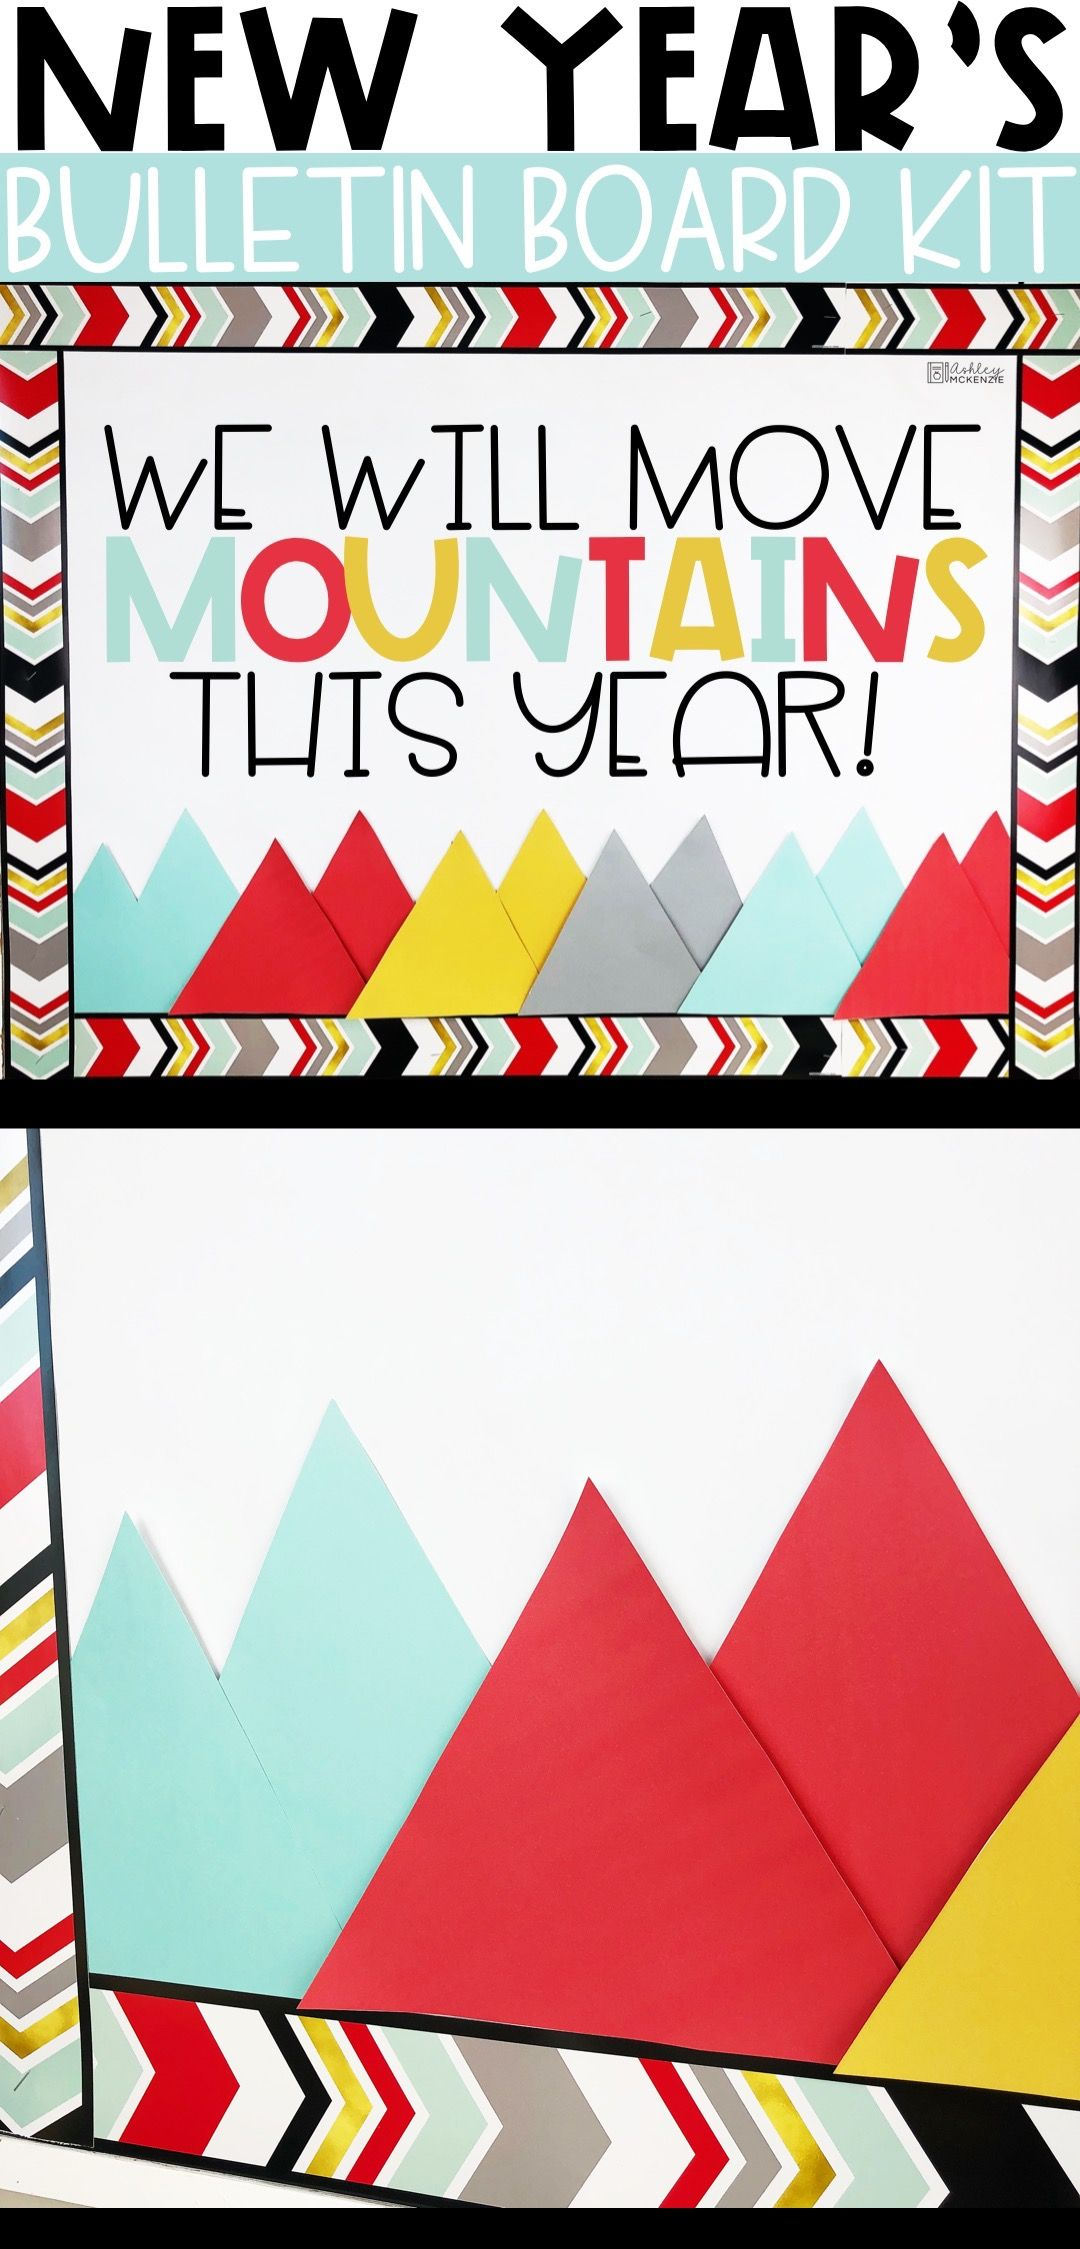 New Years 2020 Bulletin Board or Door Kit - Mountains ...